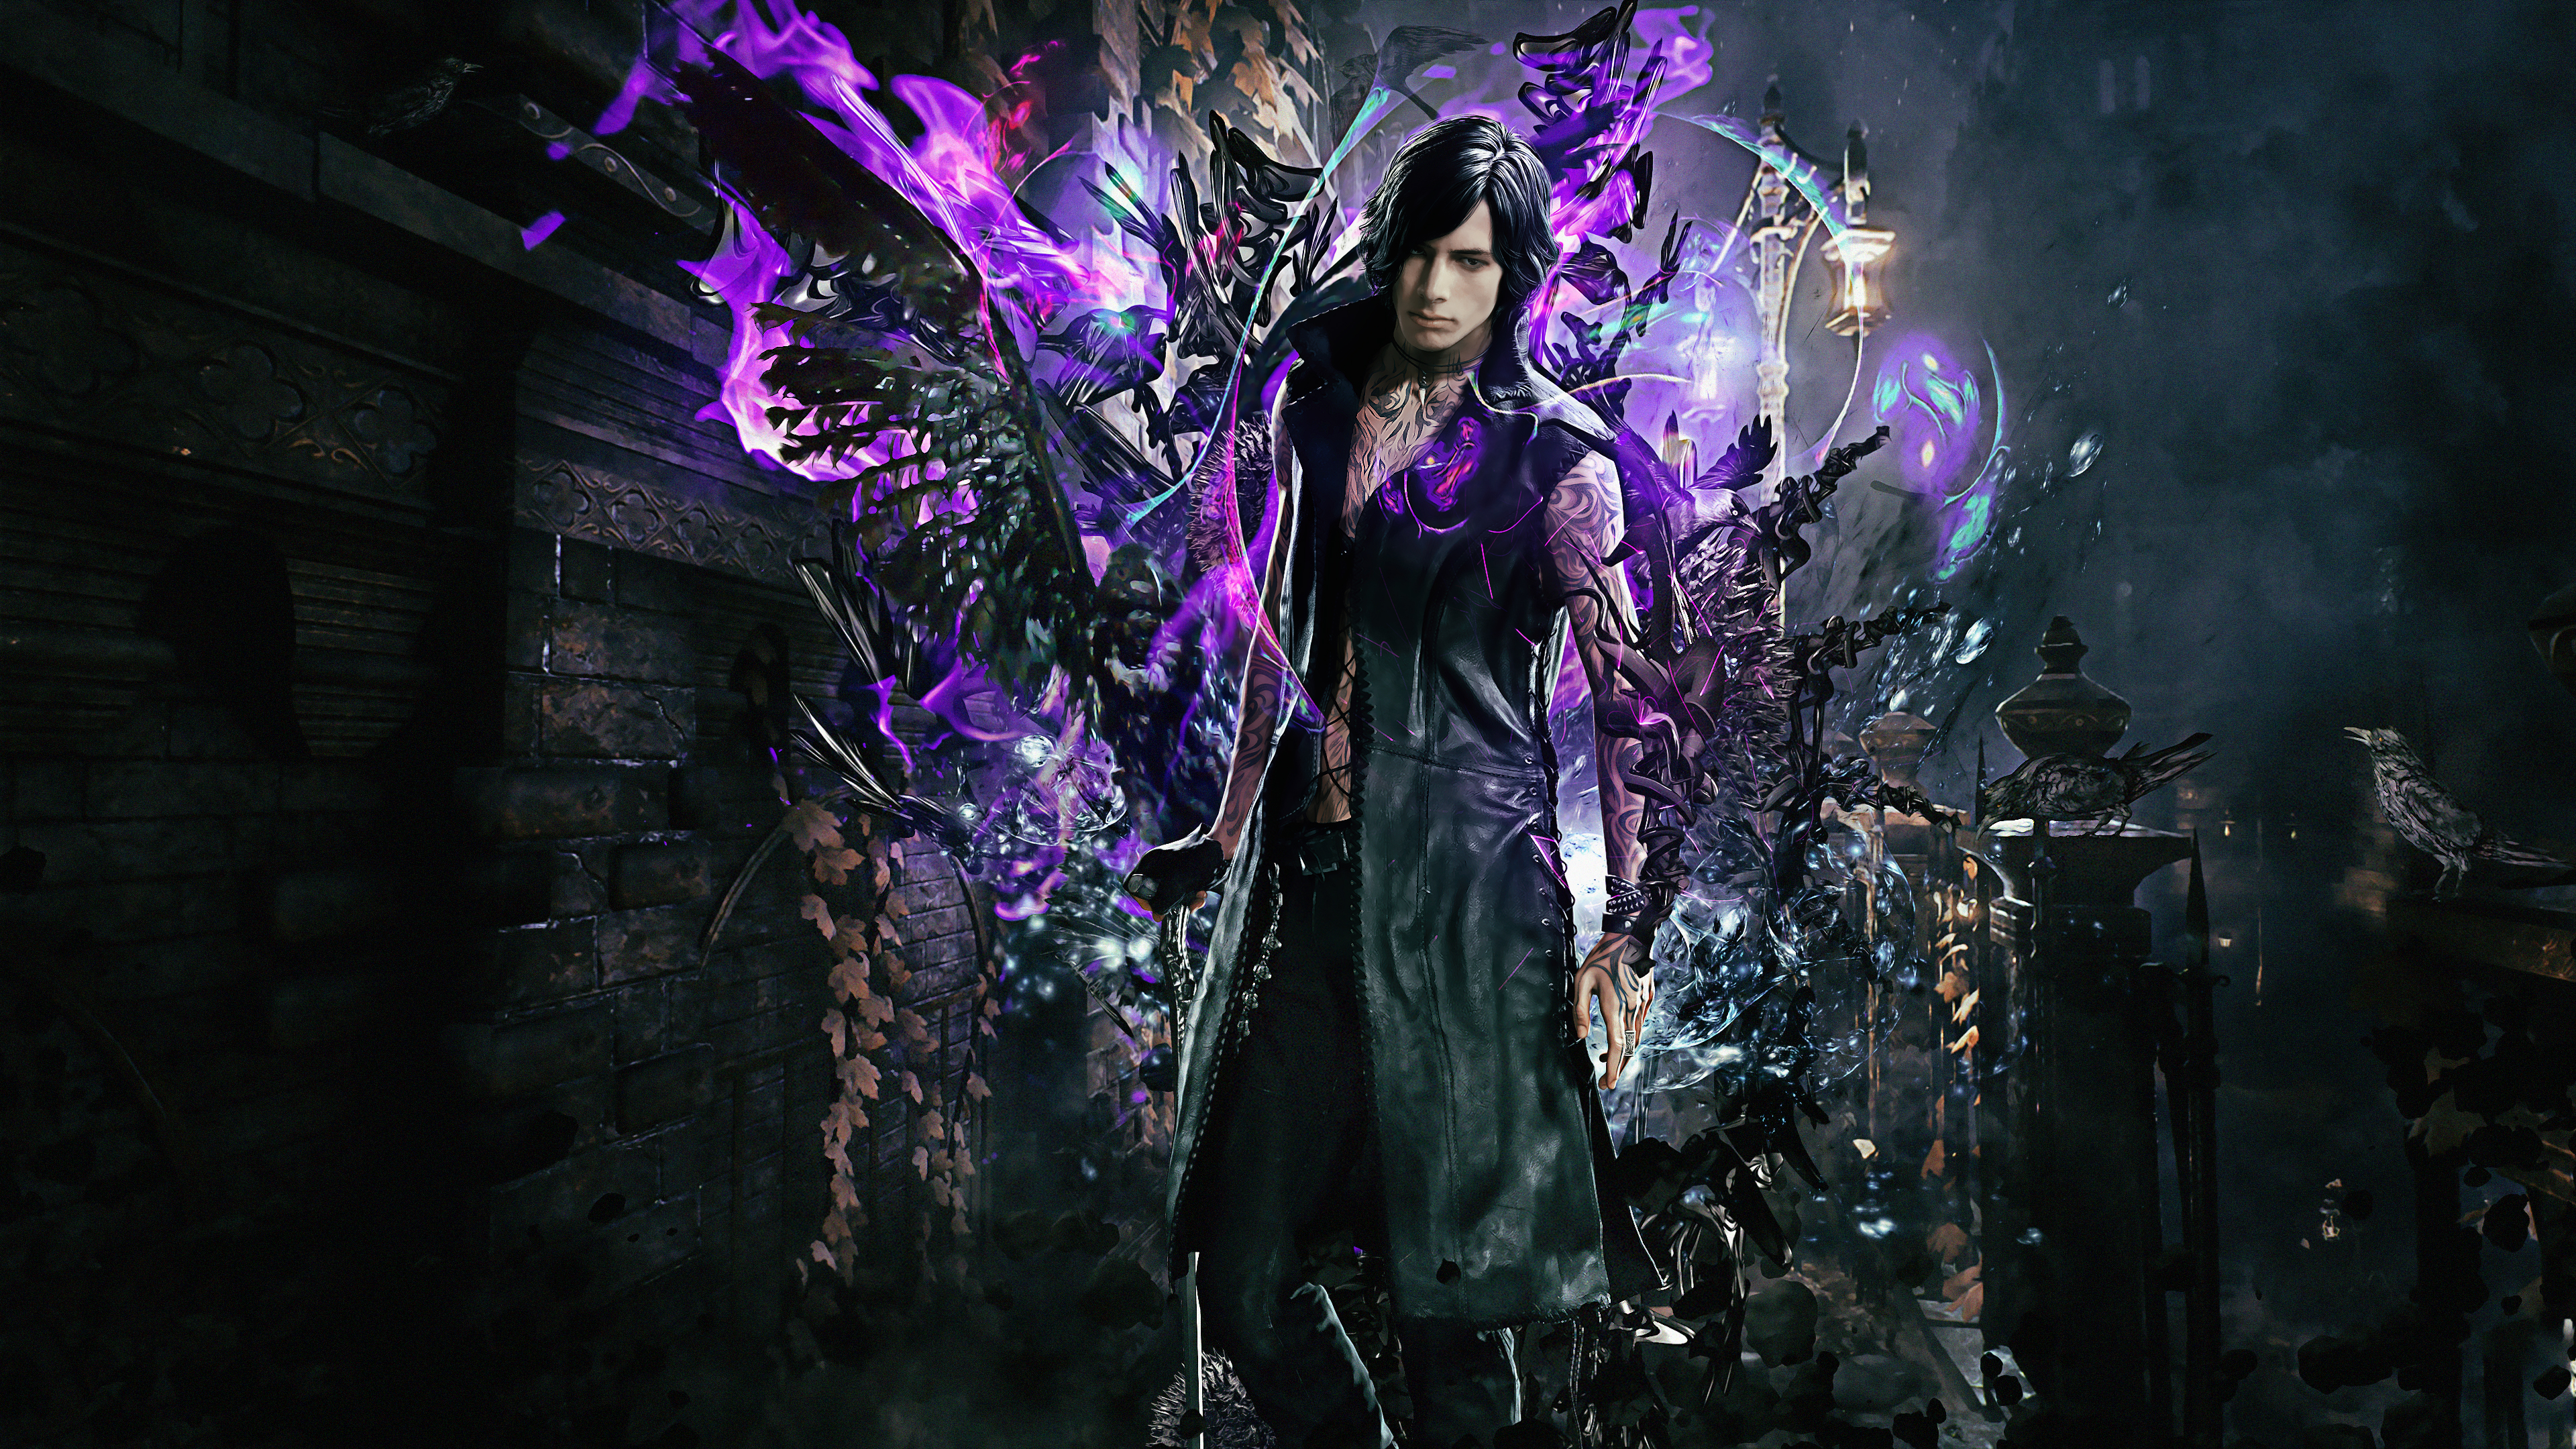 Dmc 5 Vitale 4k Wallpaper Syanart Station